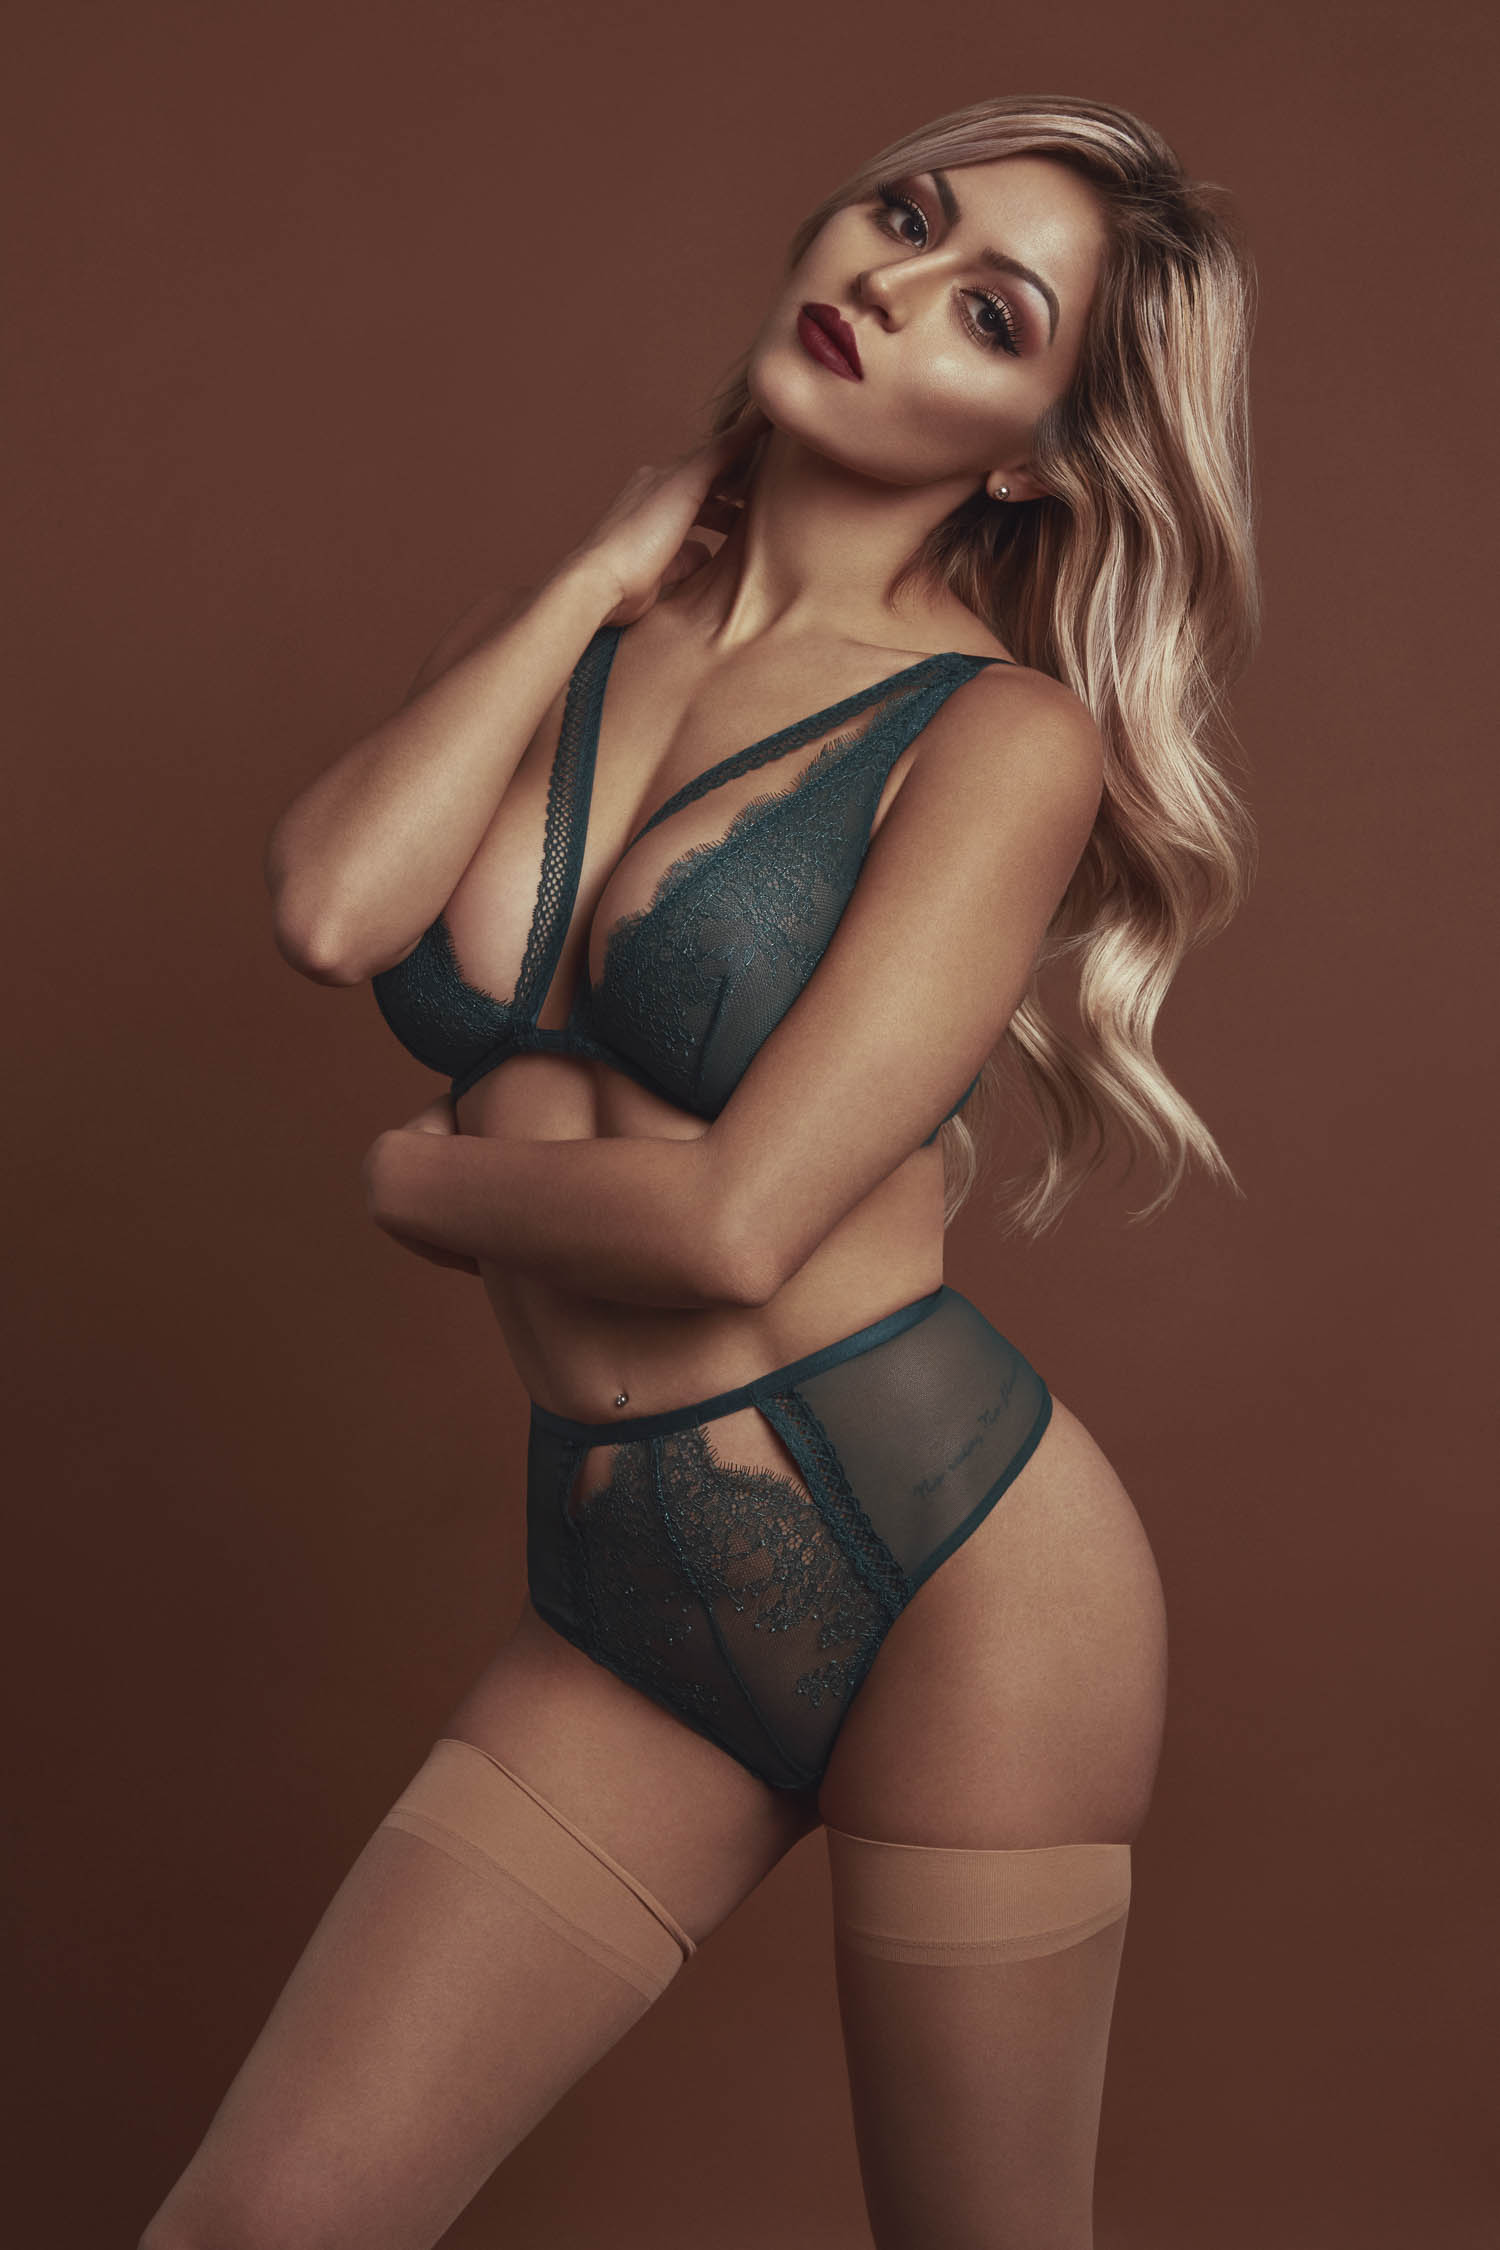 Blonde woman in a green bra and panty set with nude tights